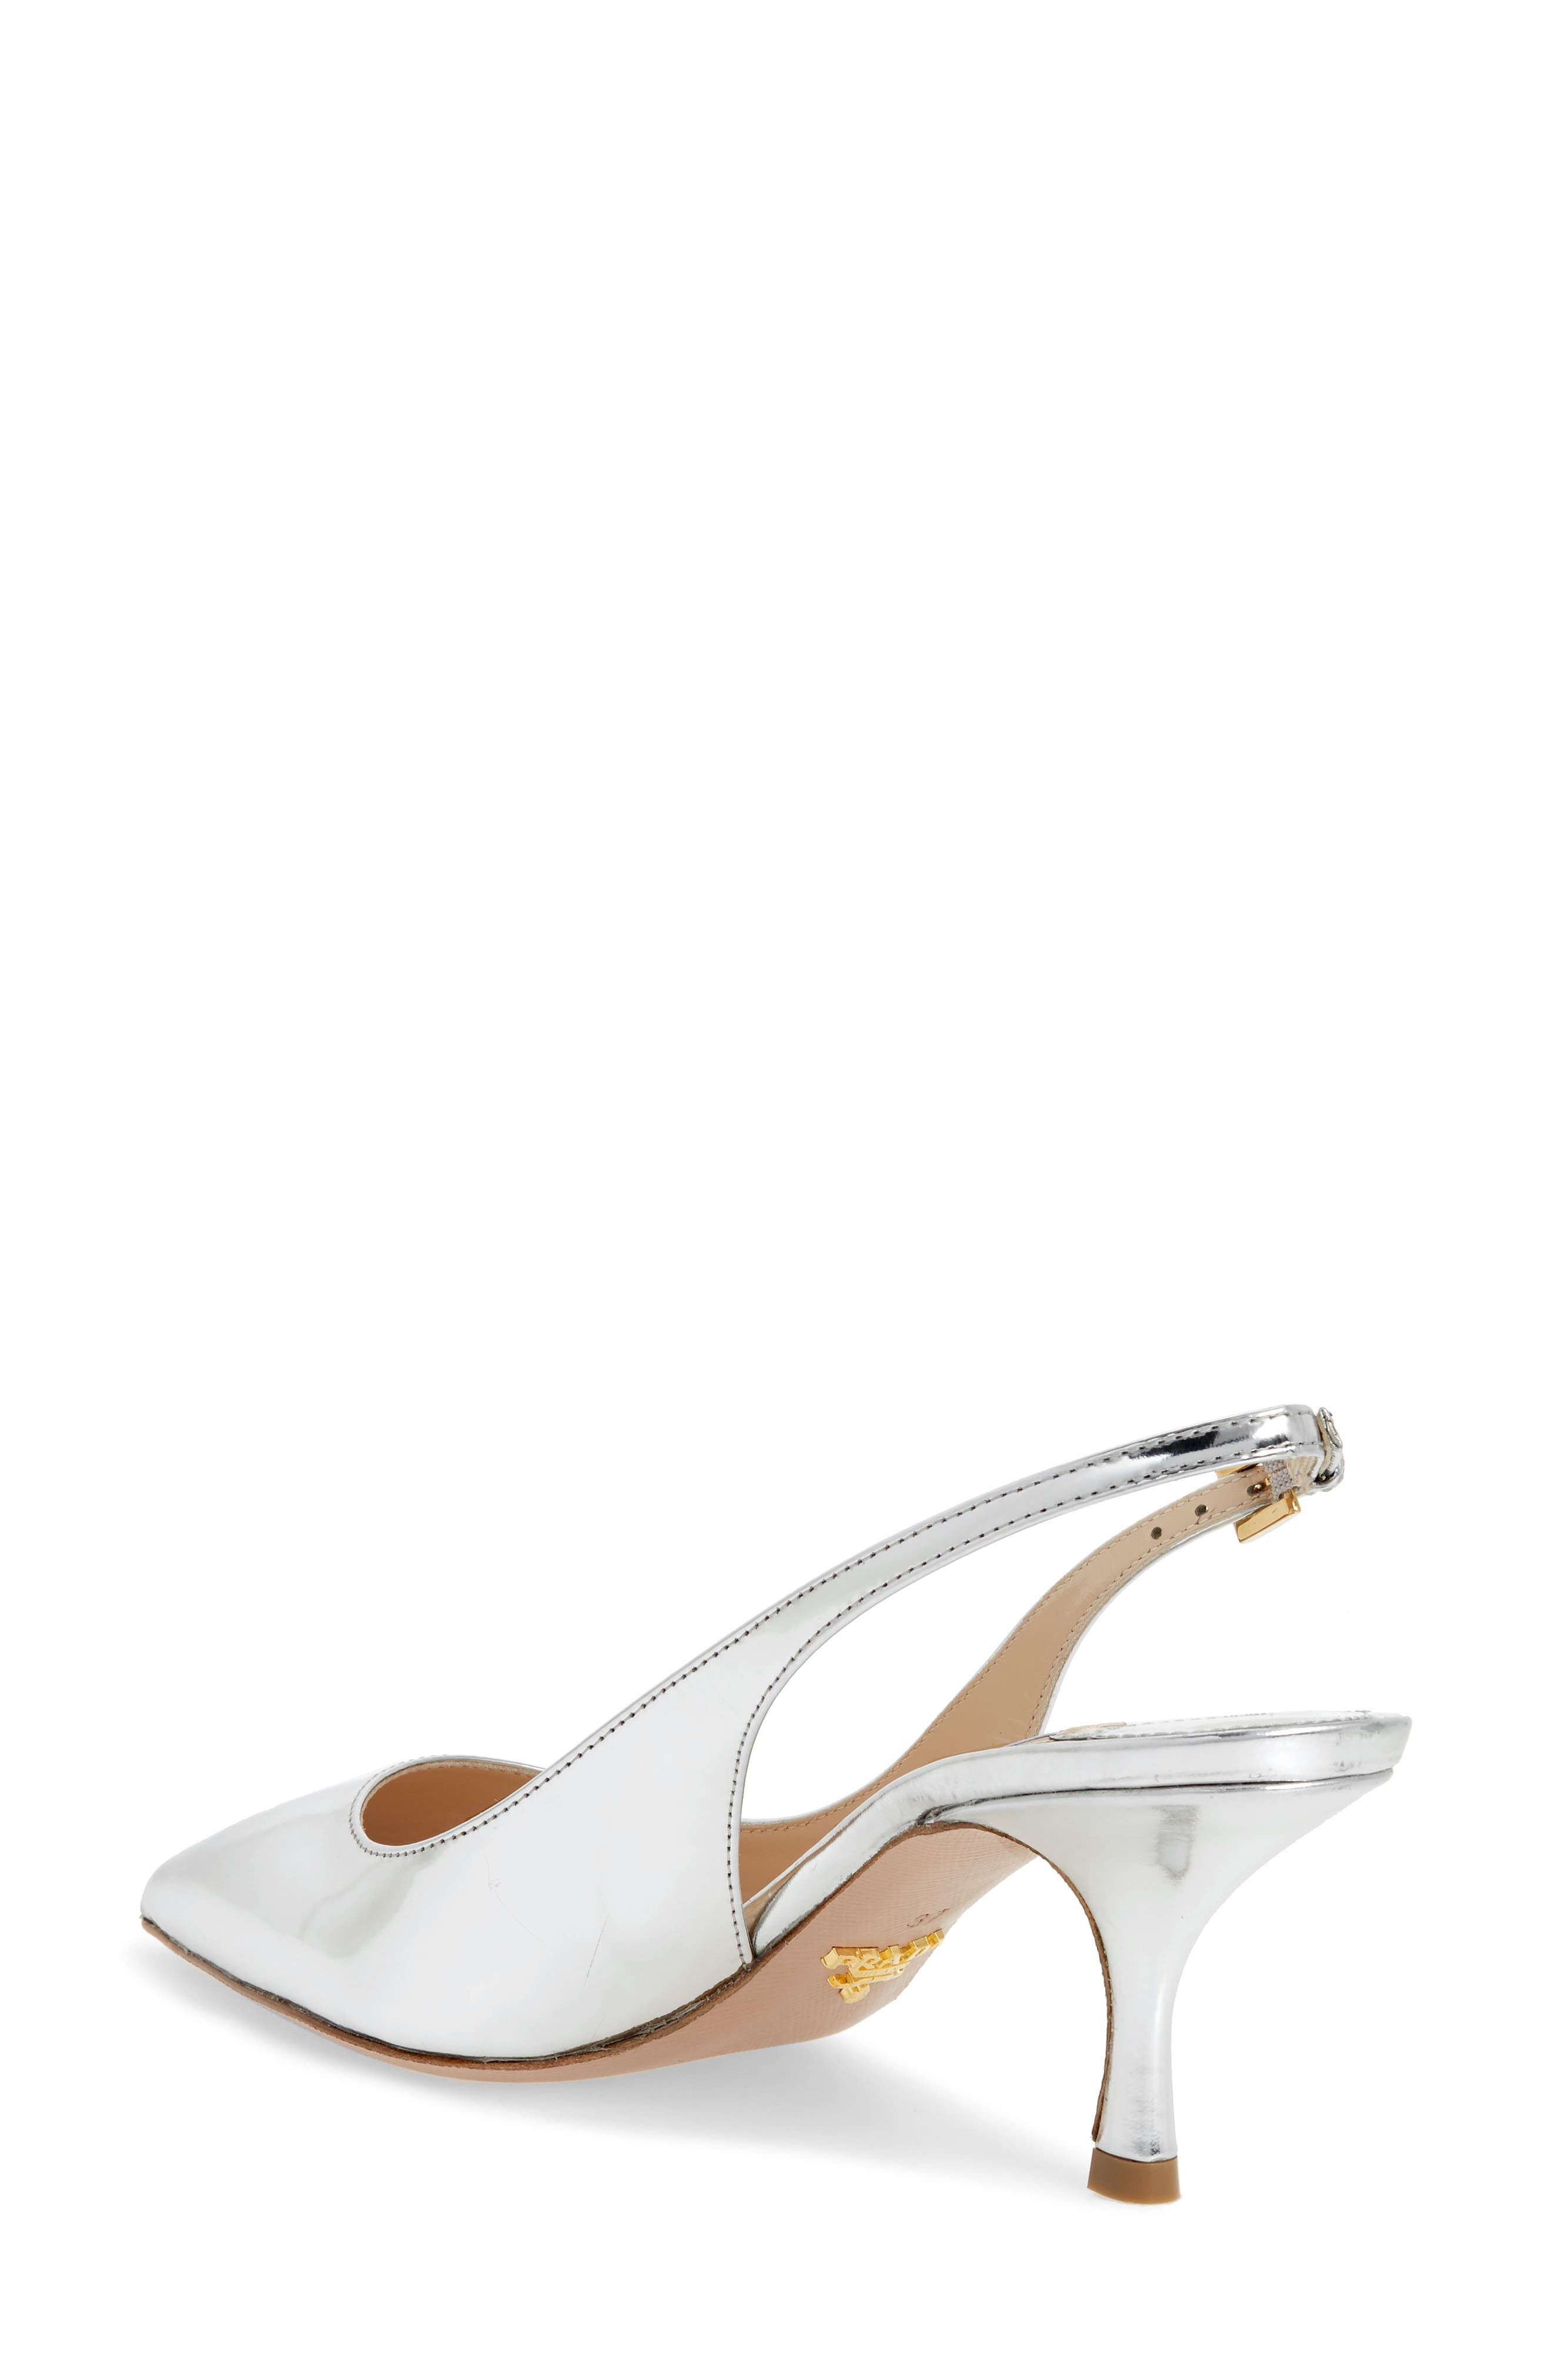 Pointy Toe Slingback Sandal,                             Alternate thumbnail 2, color,                             Silver